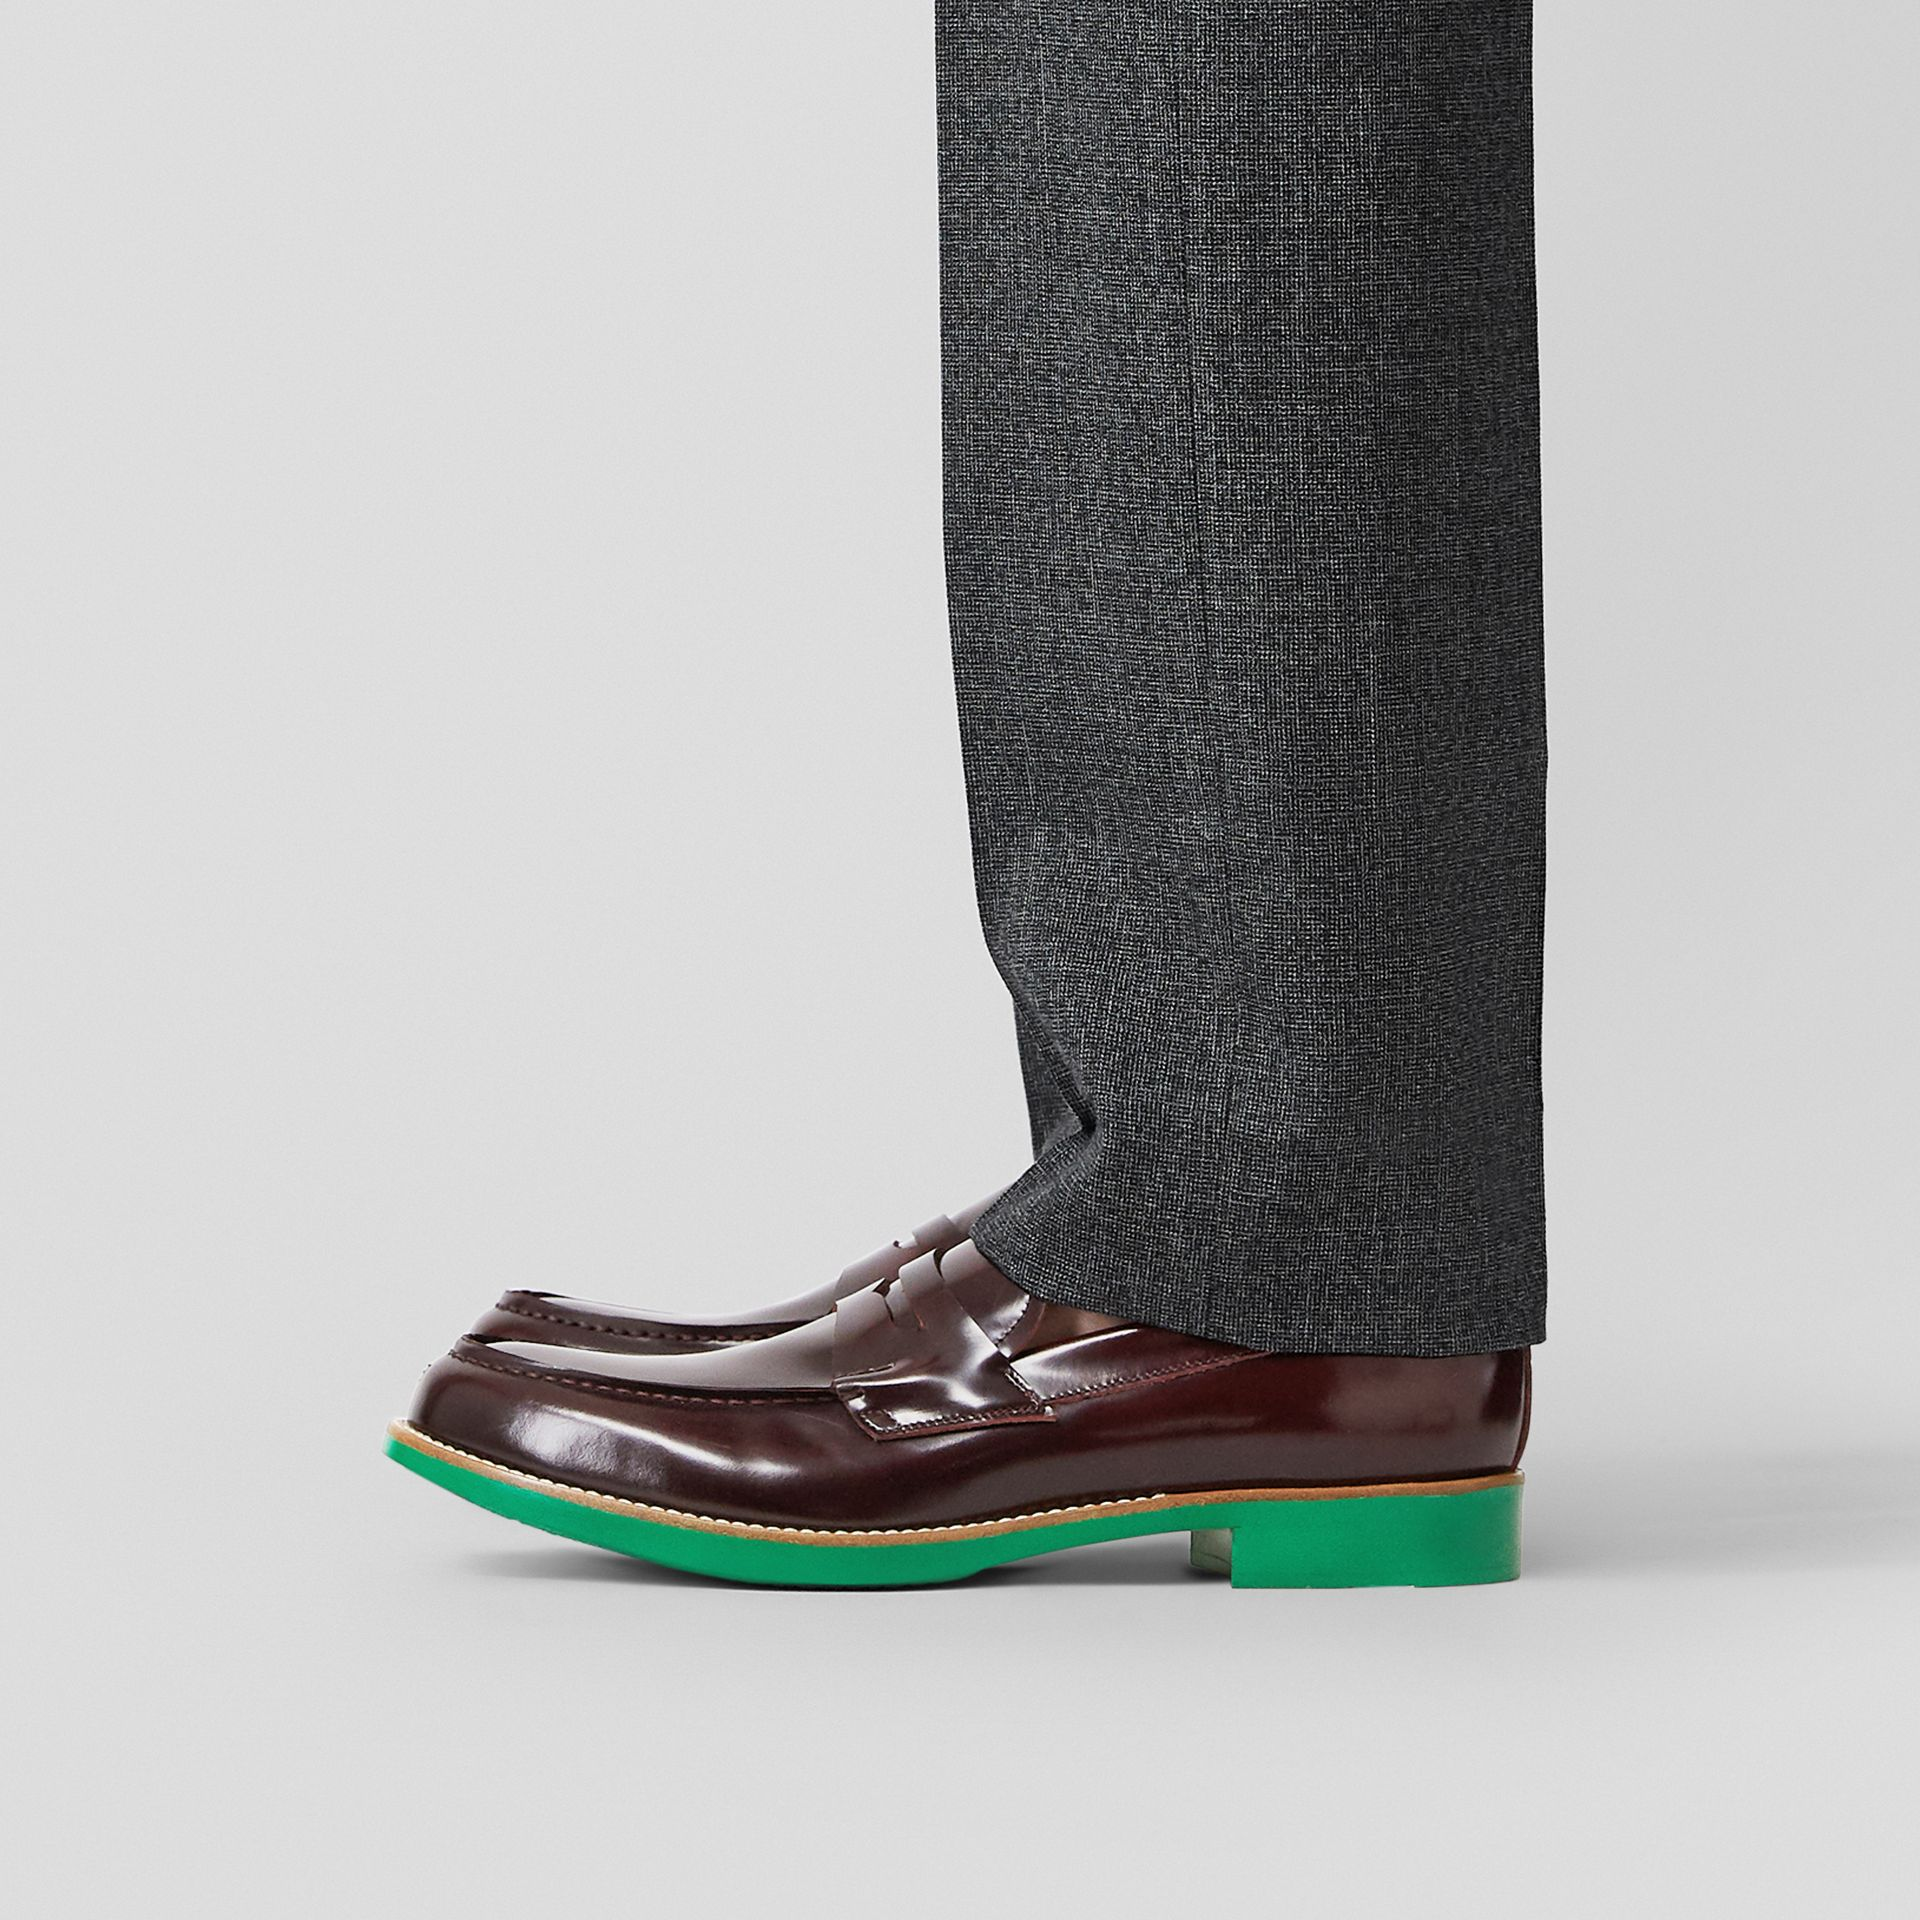 D-ring Detail Contrast Sole Leather Loafers in Bordeaux/green - Men | Burberry Hong Kong - gallery image 2